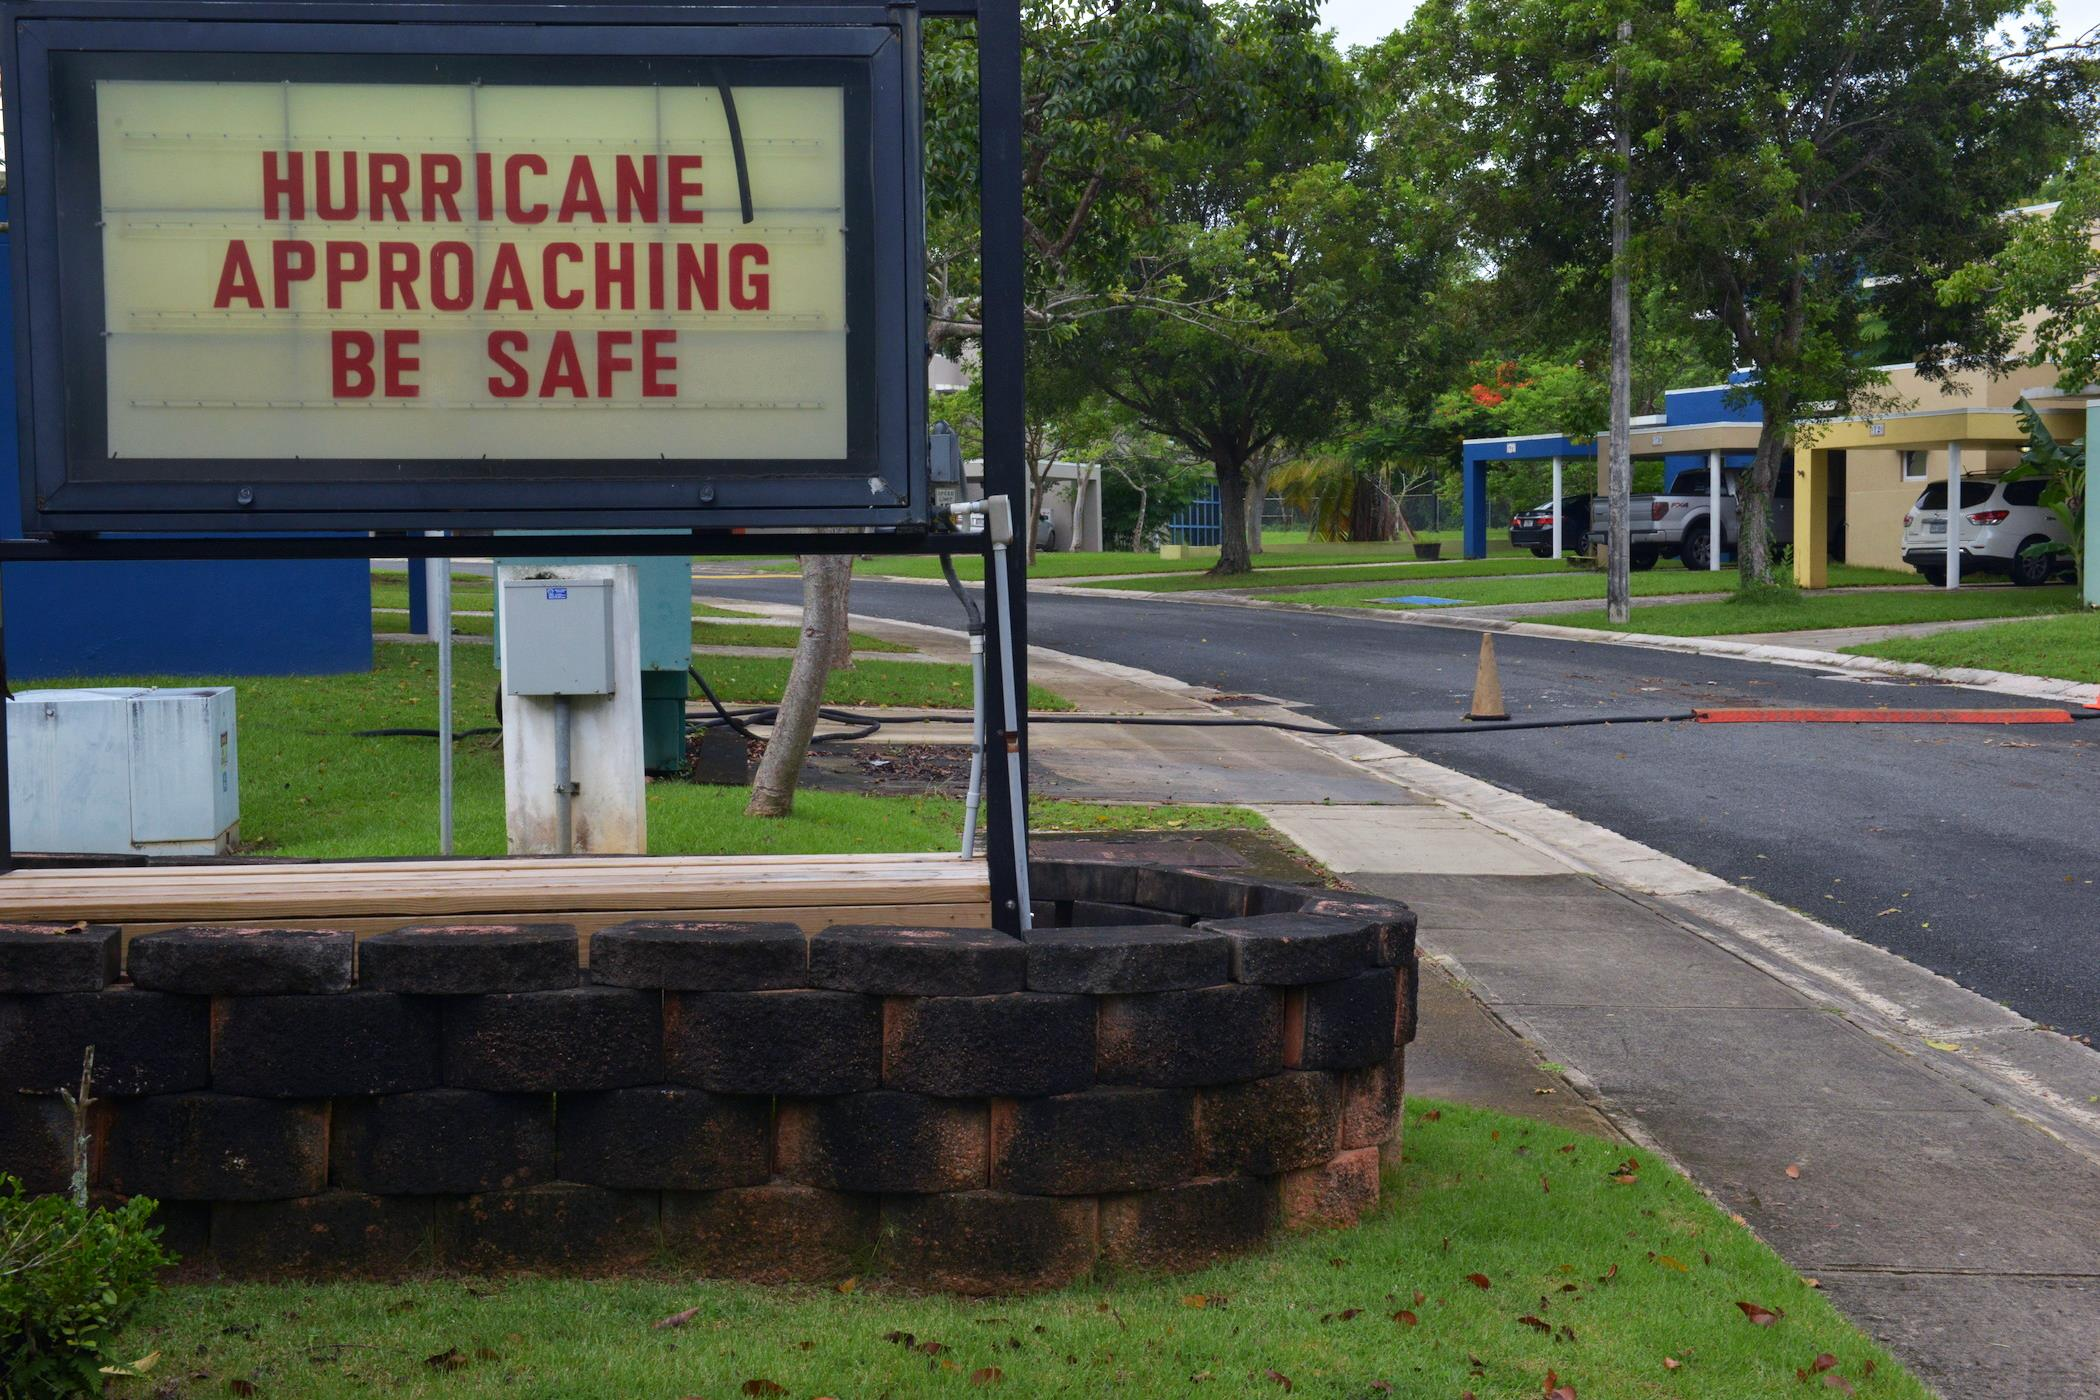 A sign warns of the coming Hurricane Irma at Coast Guard Sector San Juan, Puerto Rico, on 6 September 2017. Image: U.S. Coast Guard photo by Petty Officer 2nd Class Jonathan Lally.